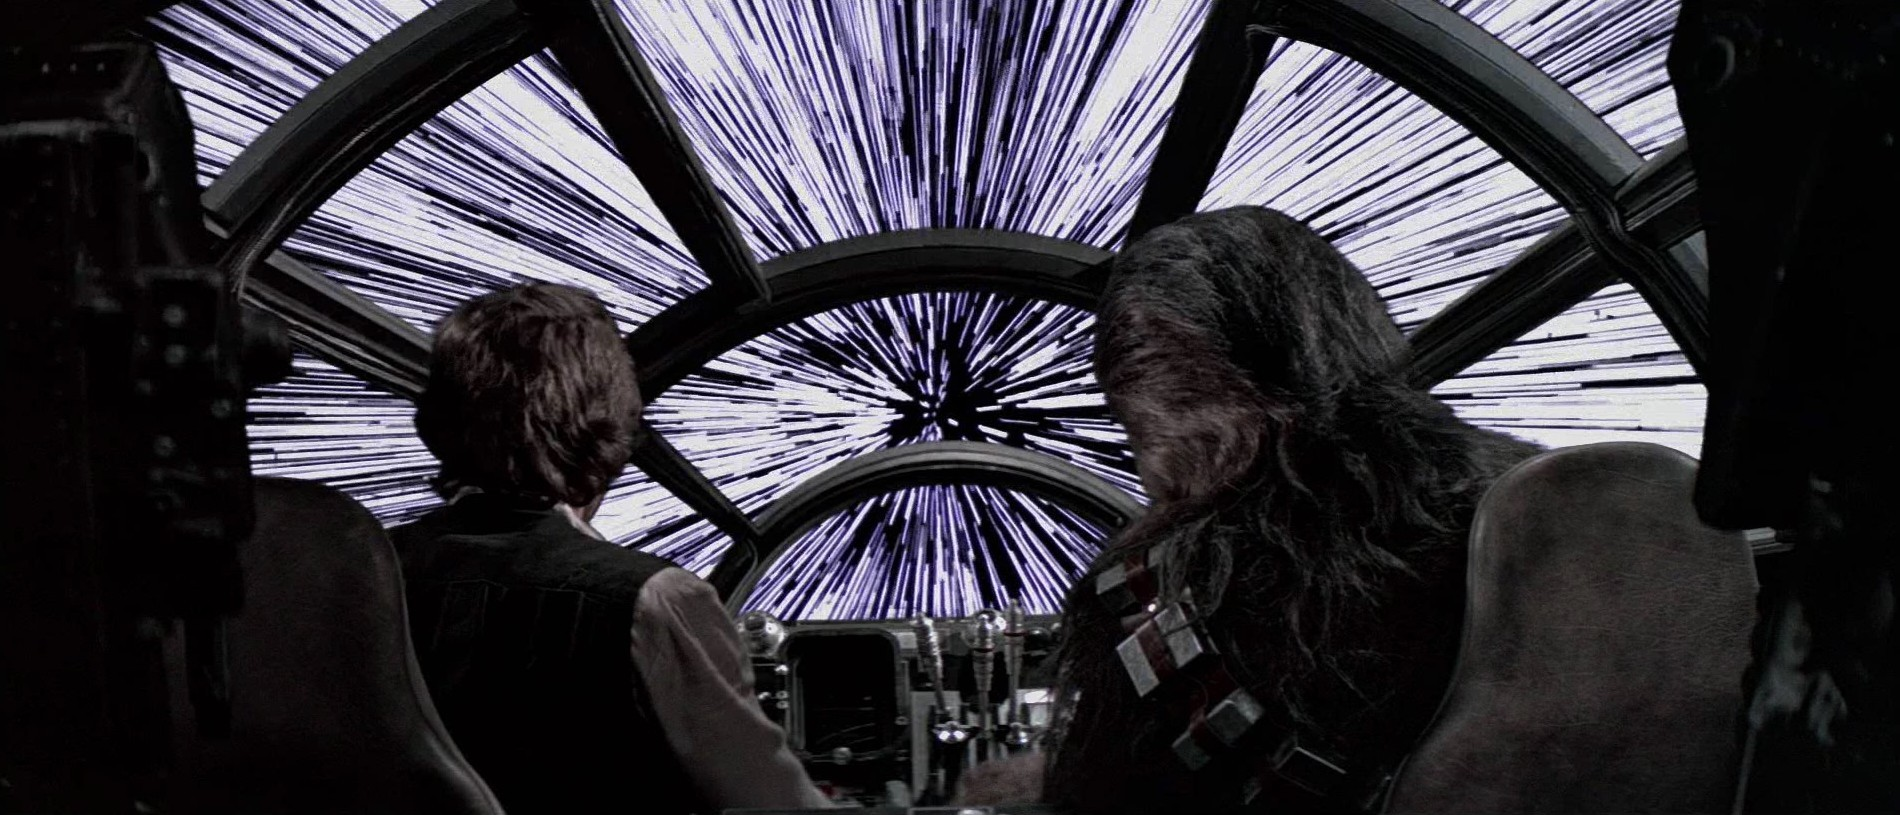 Millennium Falcon as she enters hyperspace from Star Wars Episode IV 1900x815